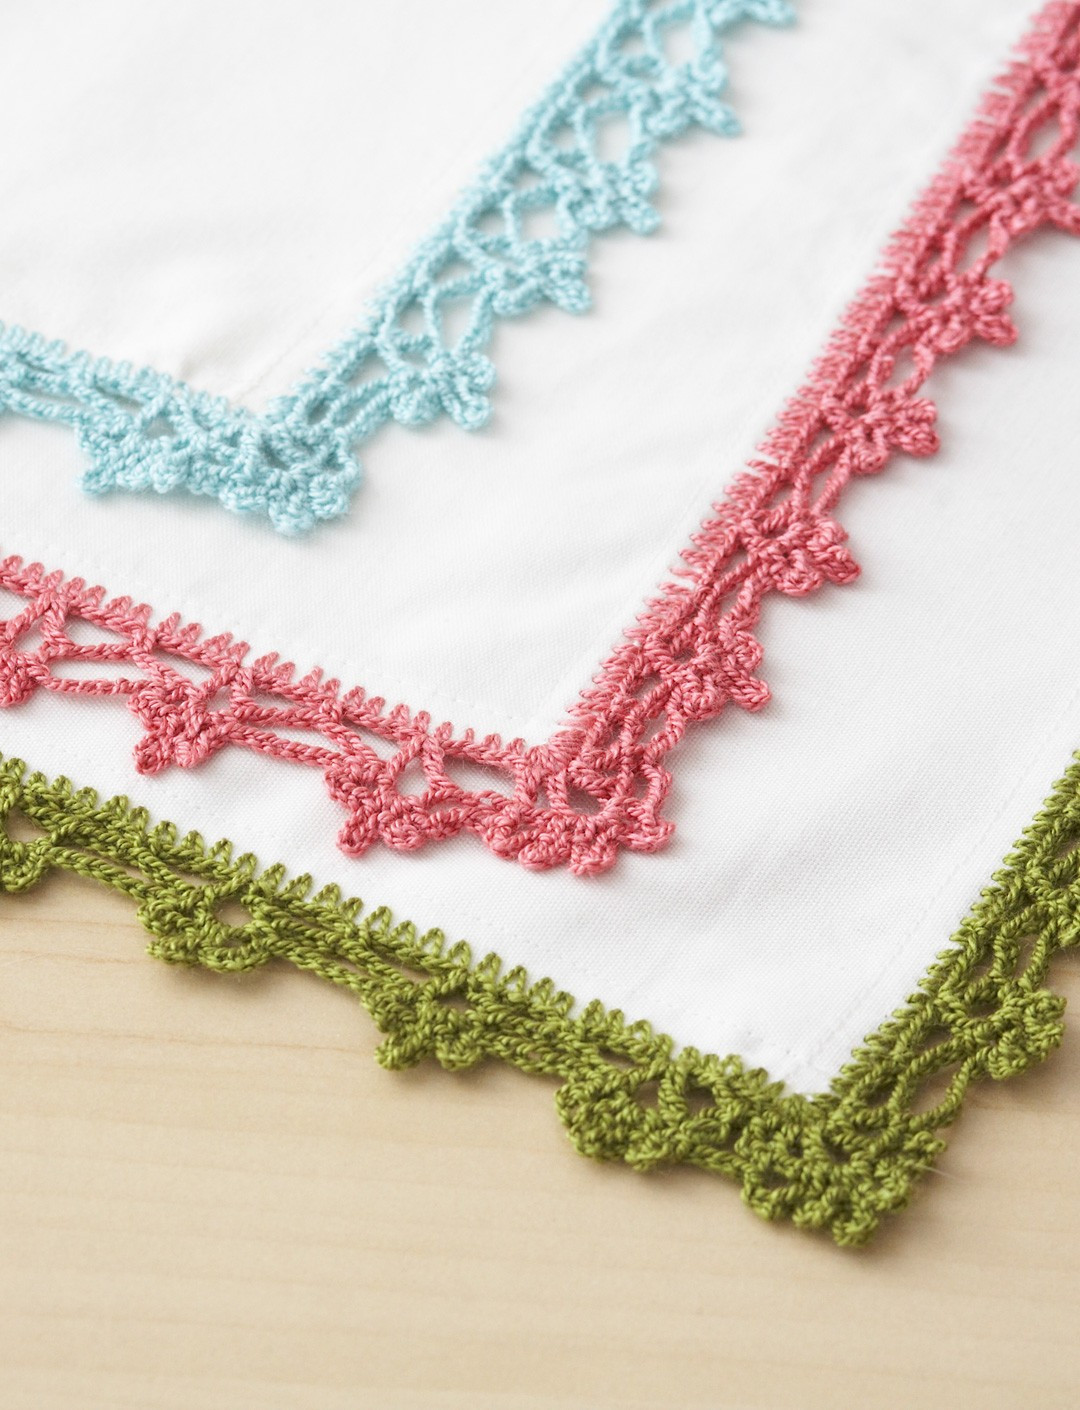 Crochet Lace Edging Lovely Bernat Lace Napkin Edging Crochet Pattern Of Charming 48 Images Crochet Lace Edging